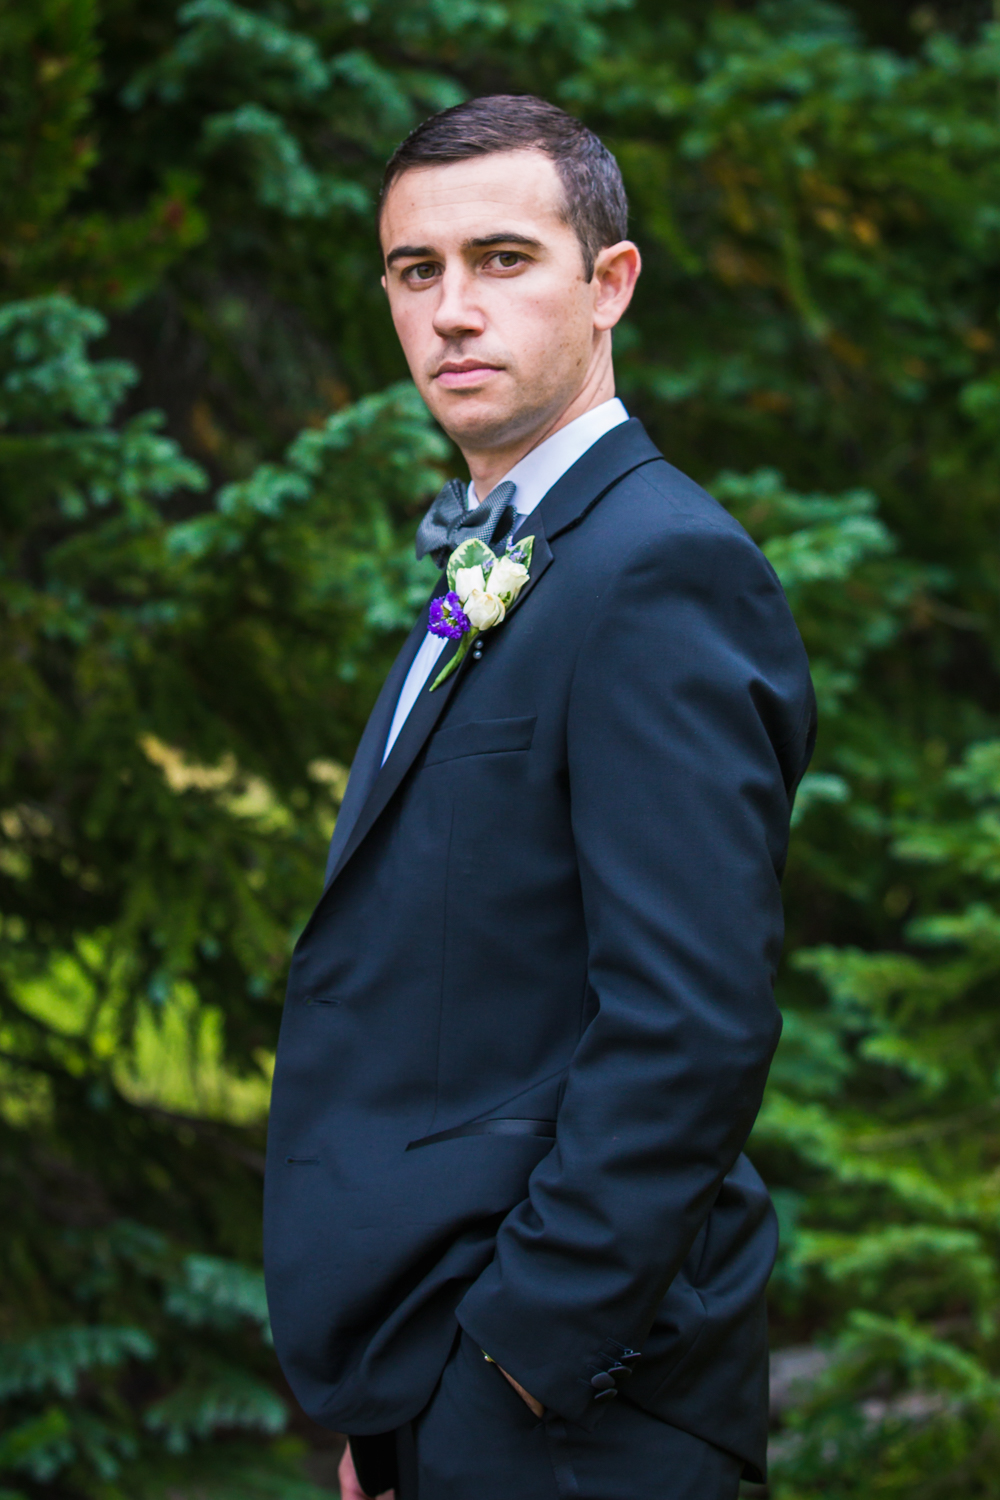 The Groom.Vail Colorado Wedding photographed by JMGant Photography.